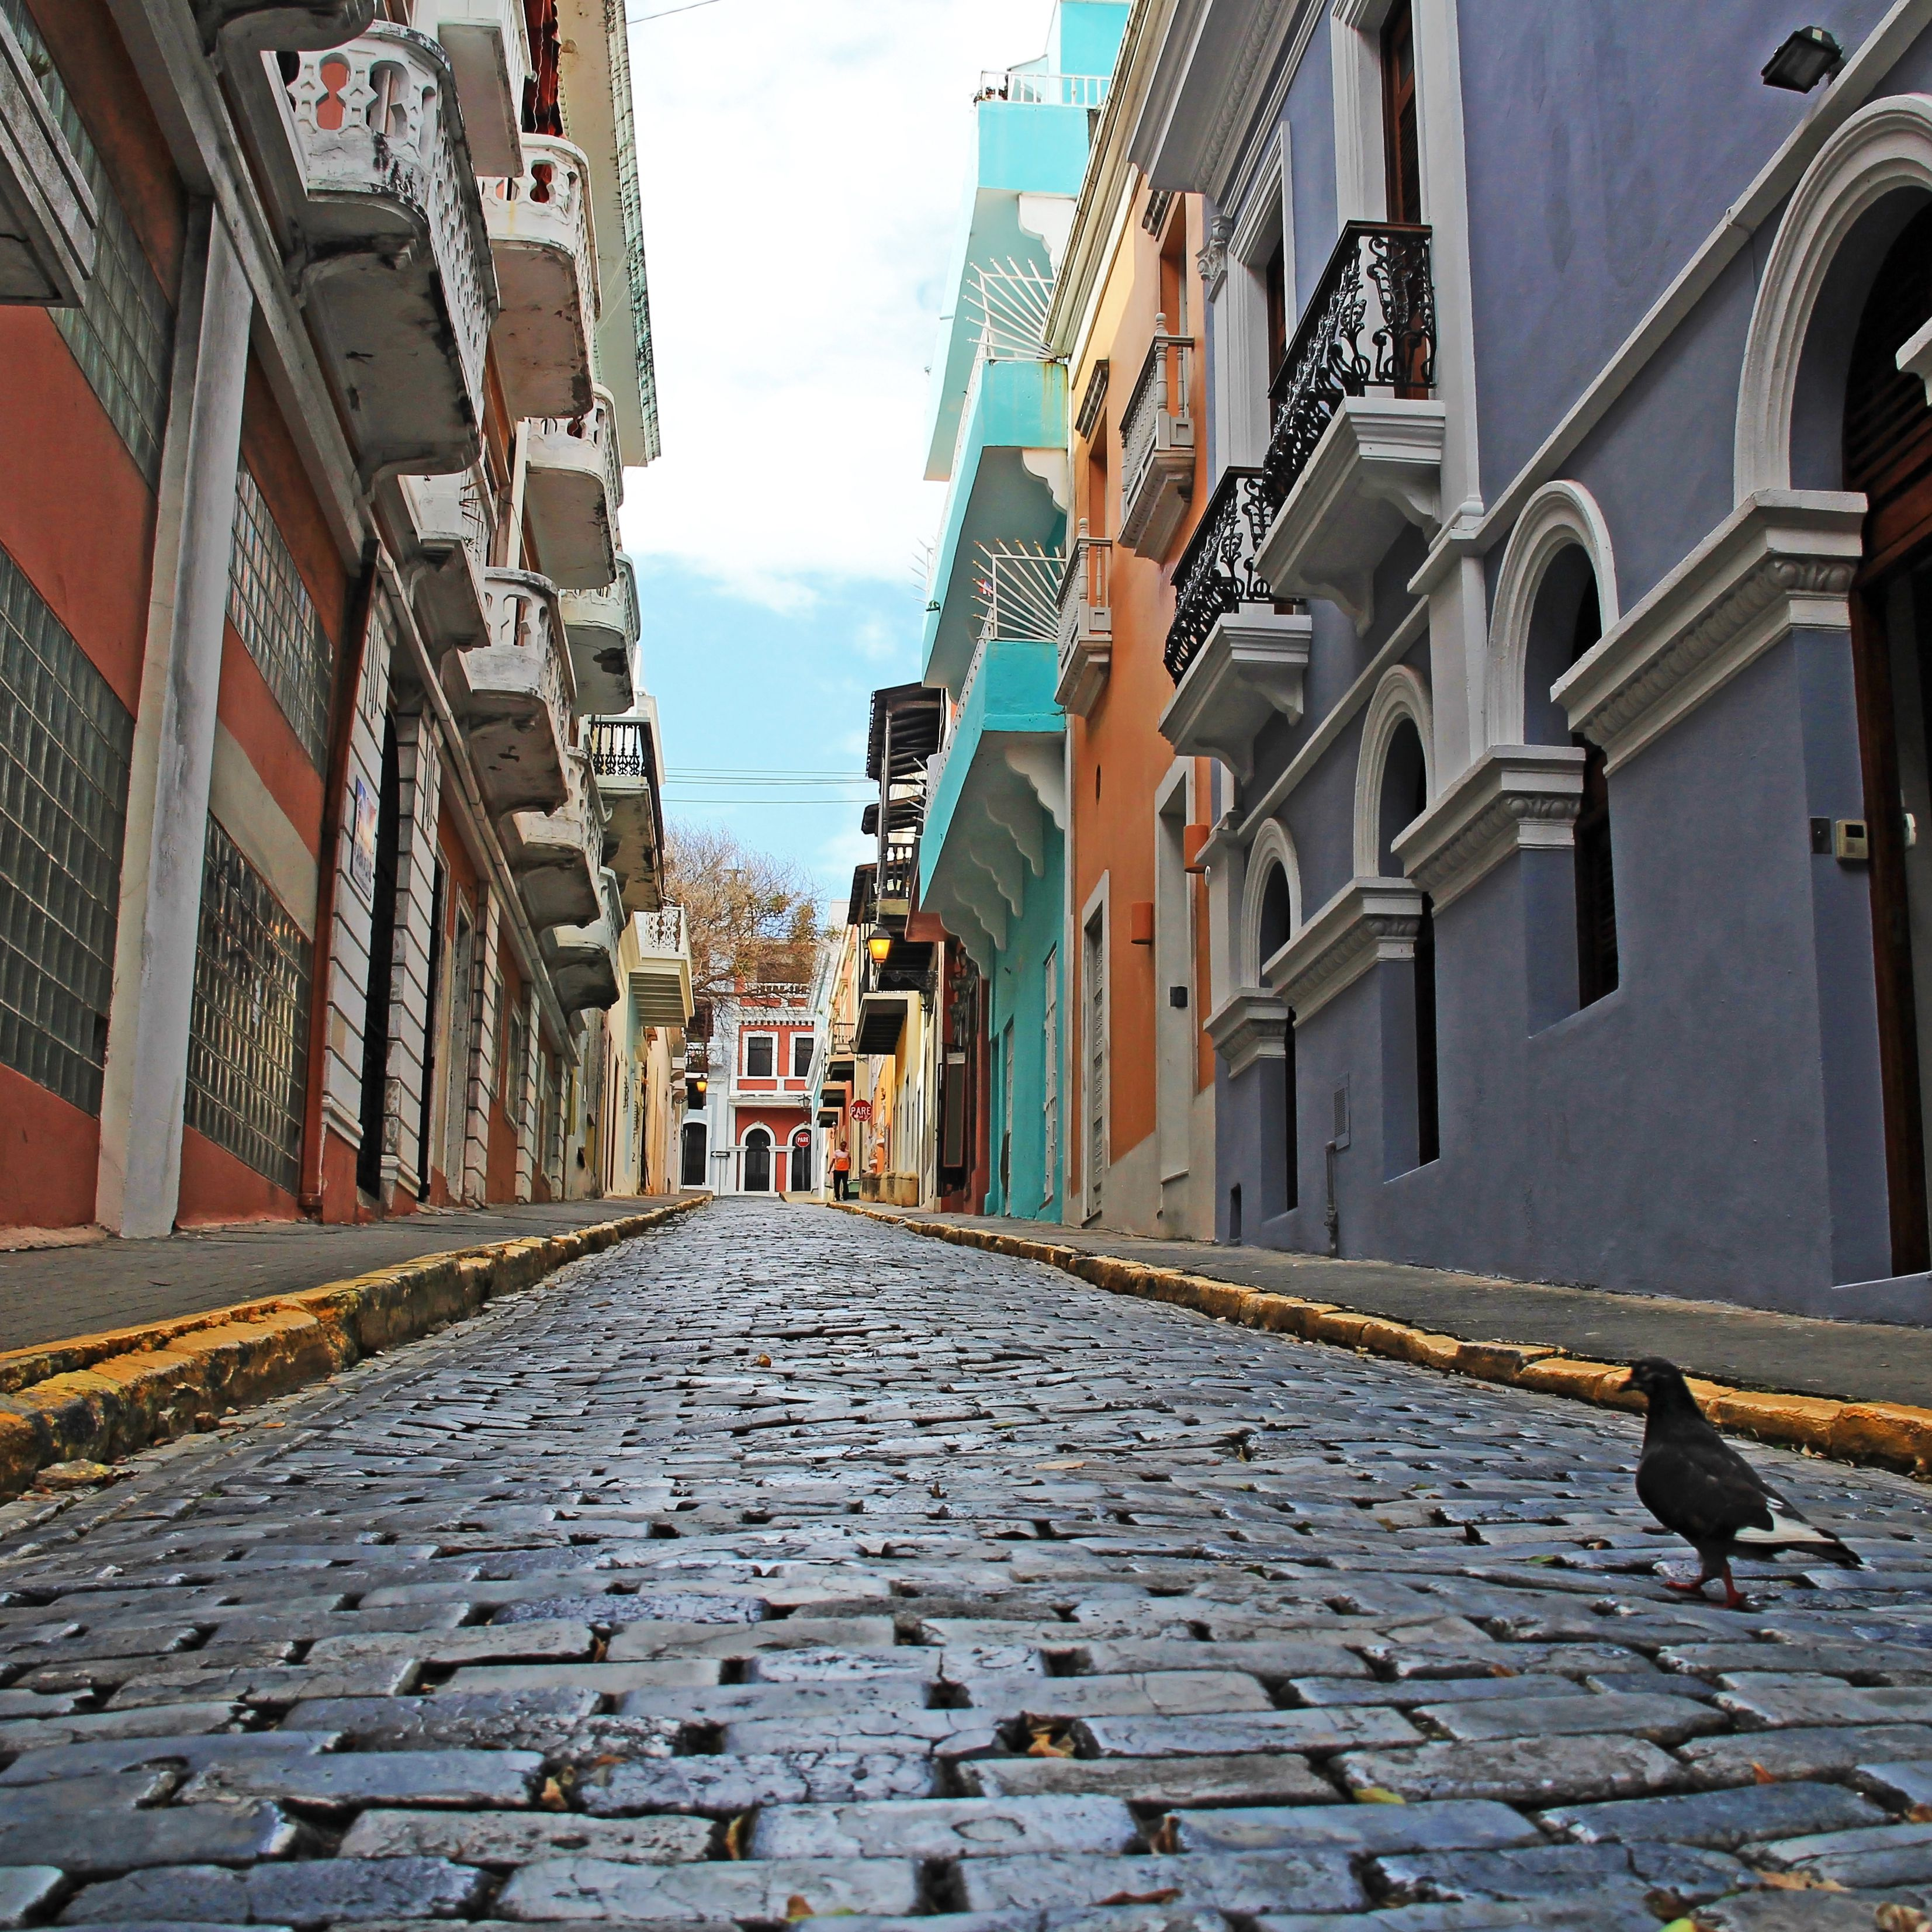 The Top 10 Things to Do in Old San Juan, Puerto Rico